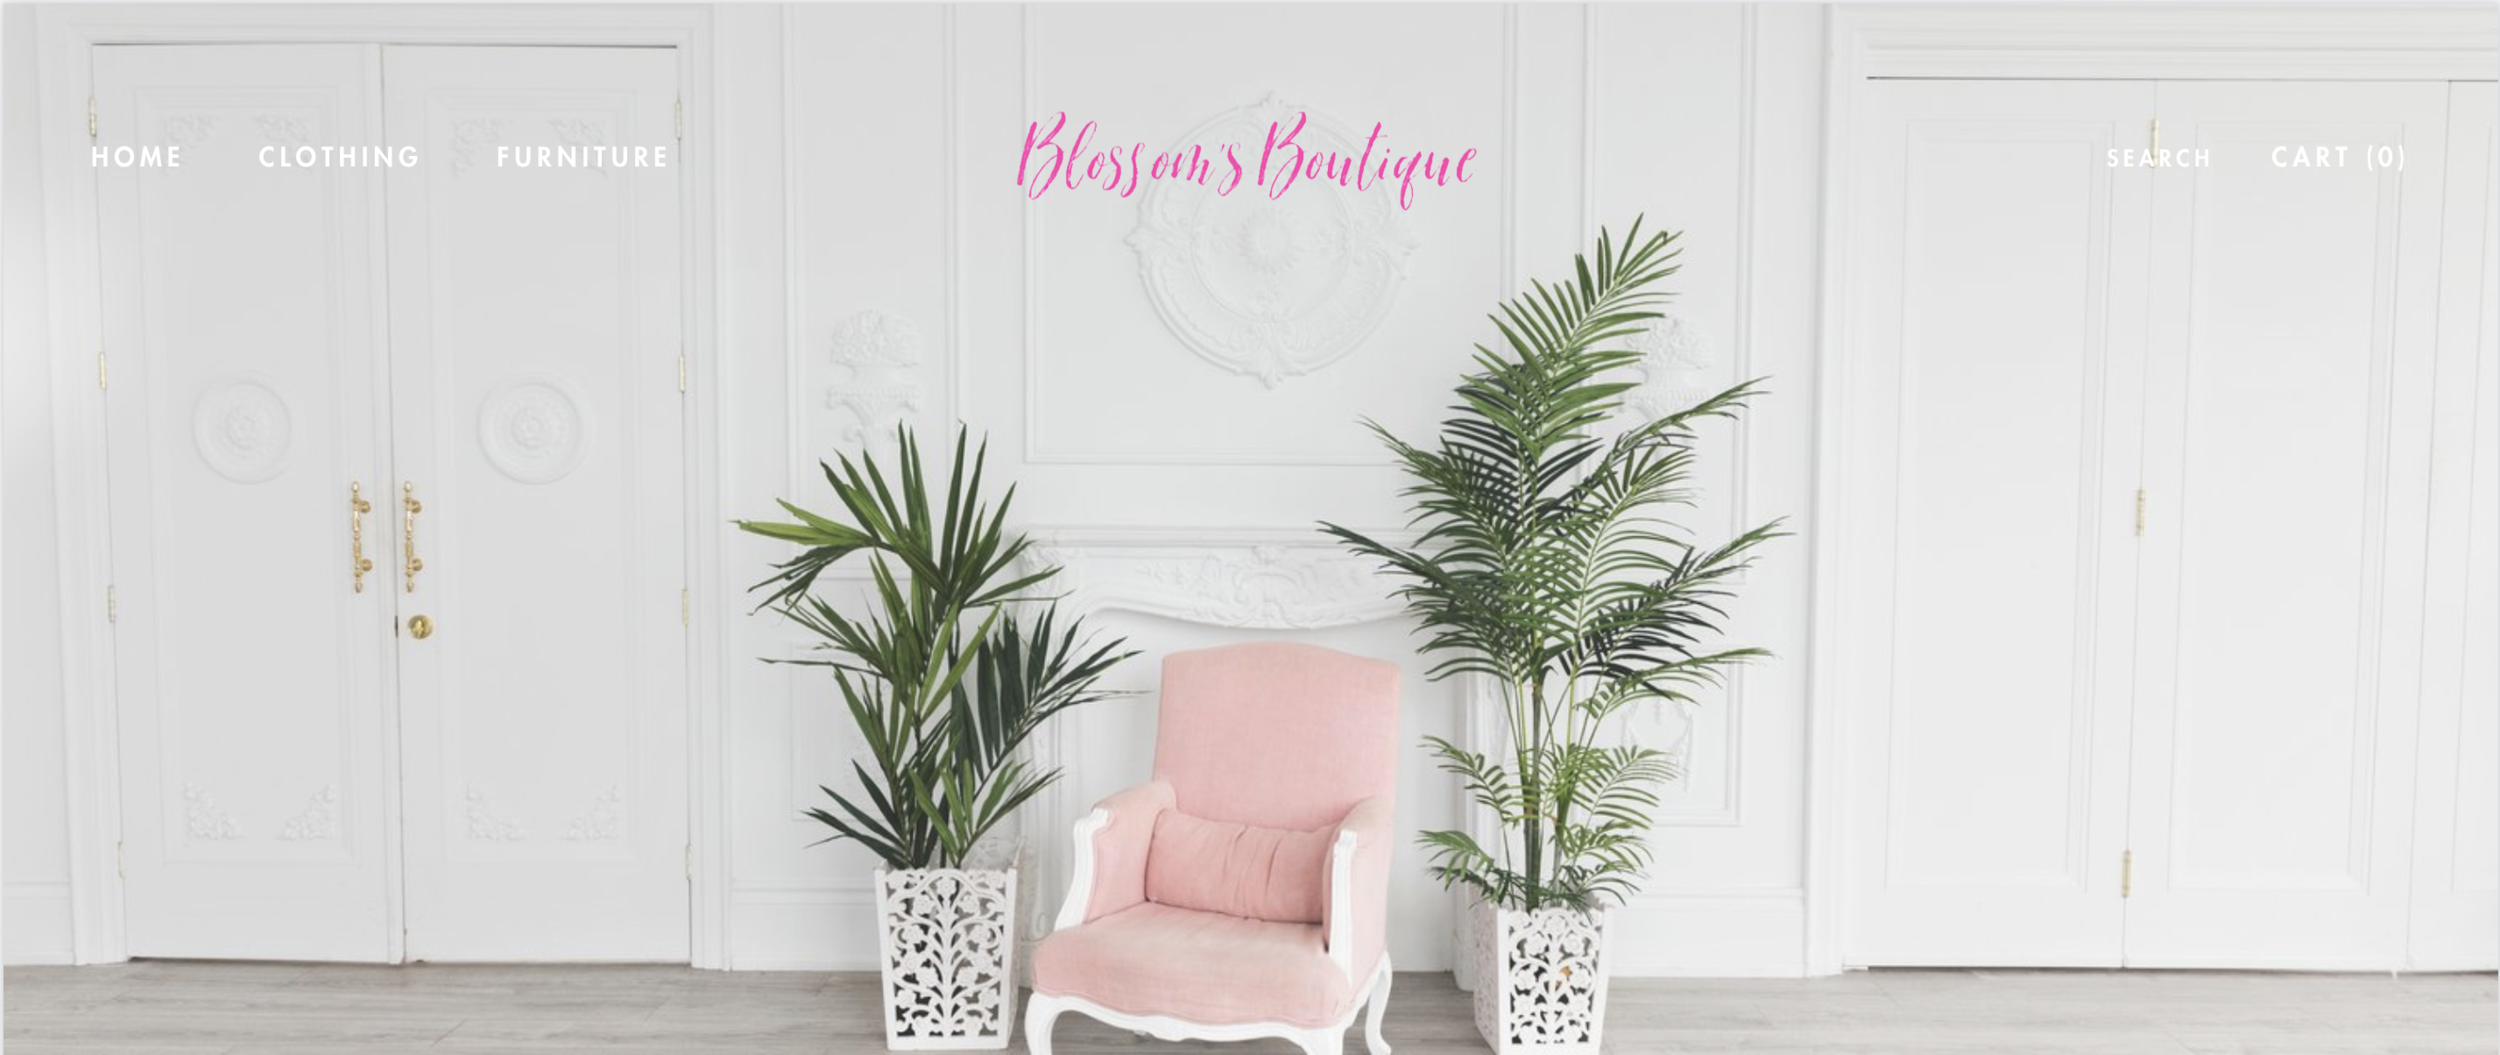 Shopify website design for Blossom's Boutique.png